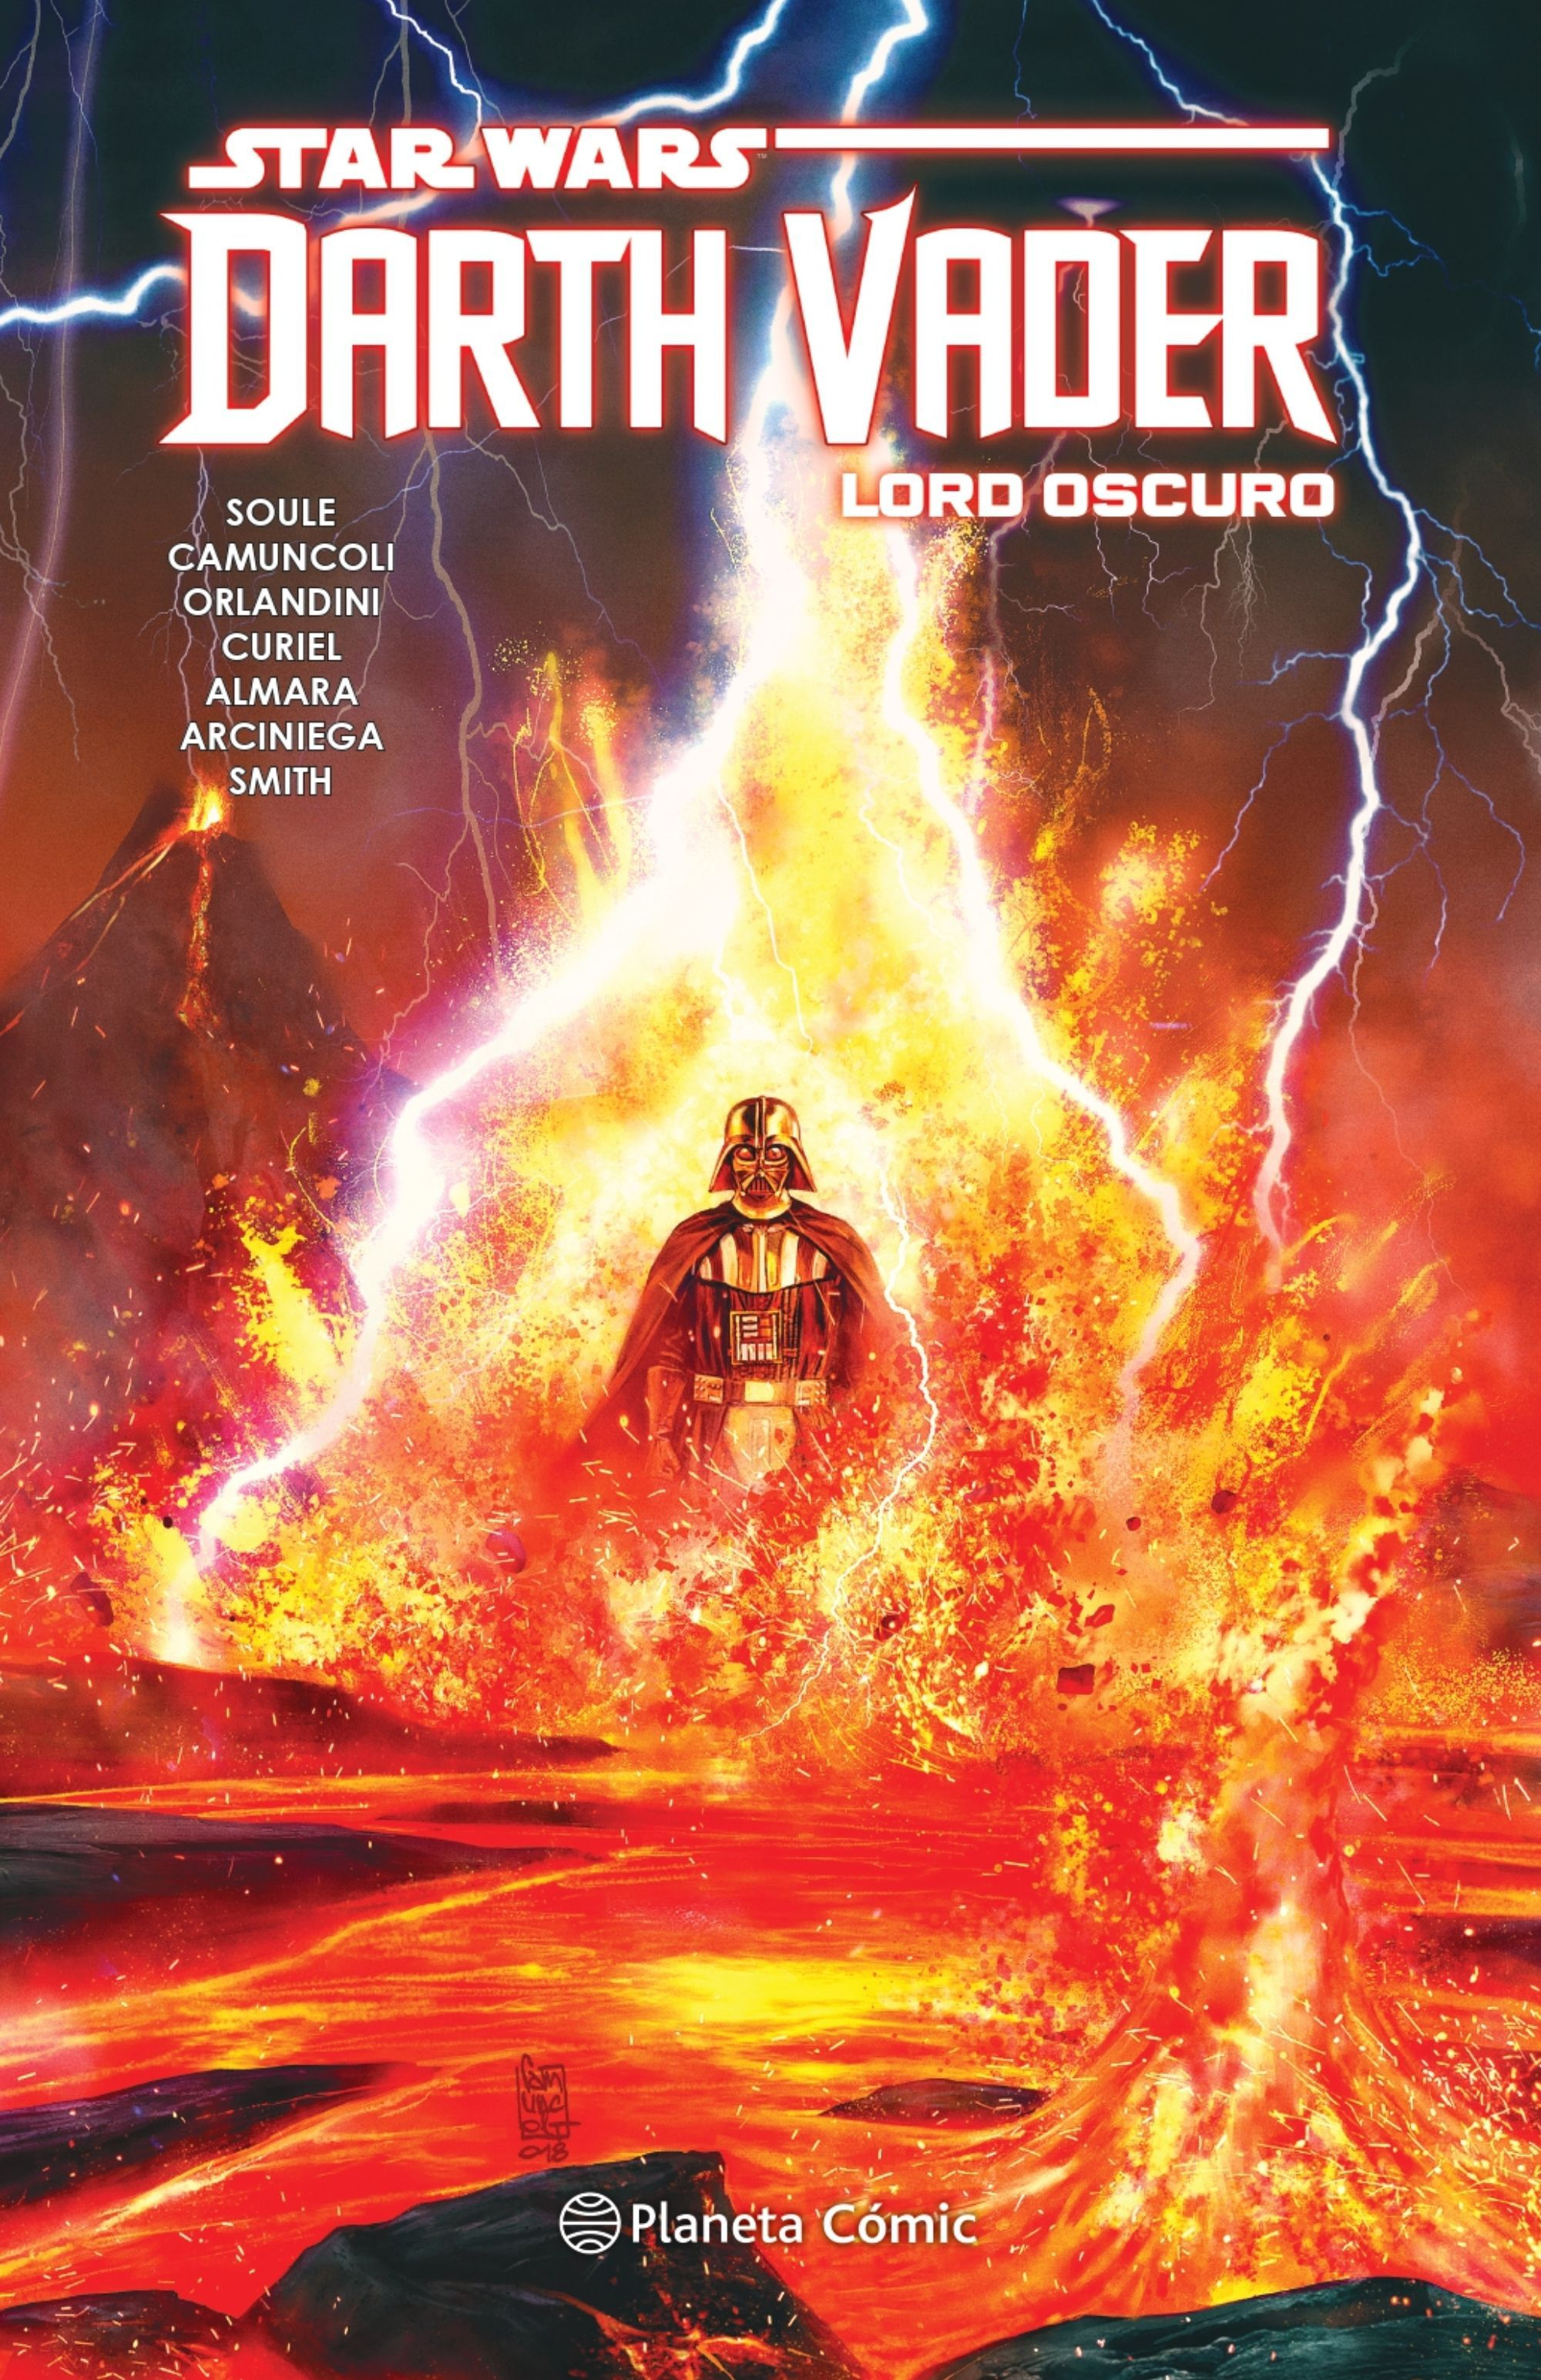 STAR WARS DARTH VADER LORD OSCURO TOMO Nº 04/04